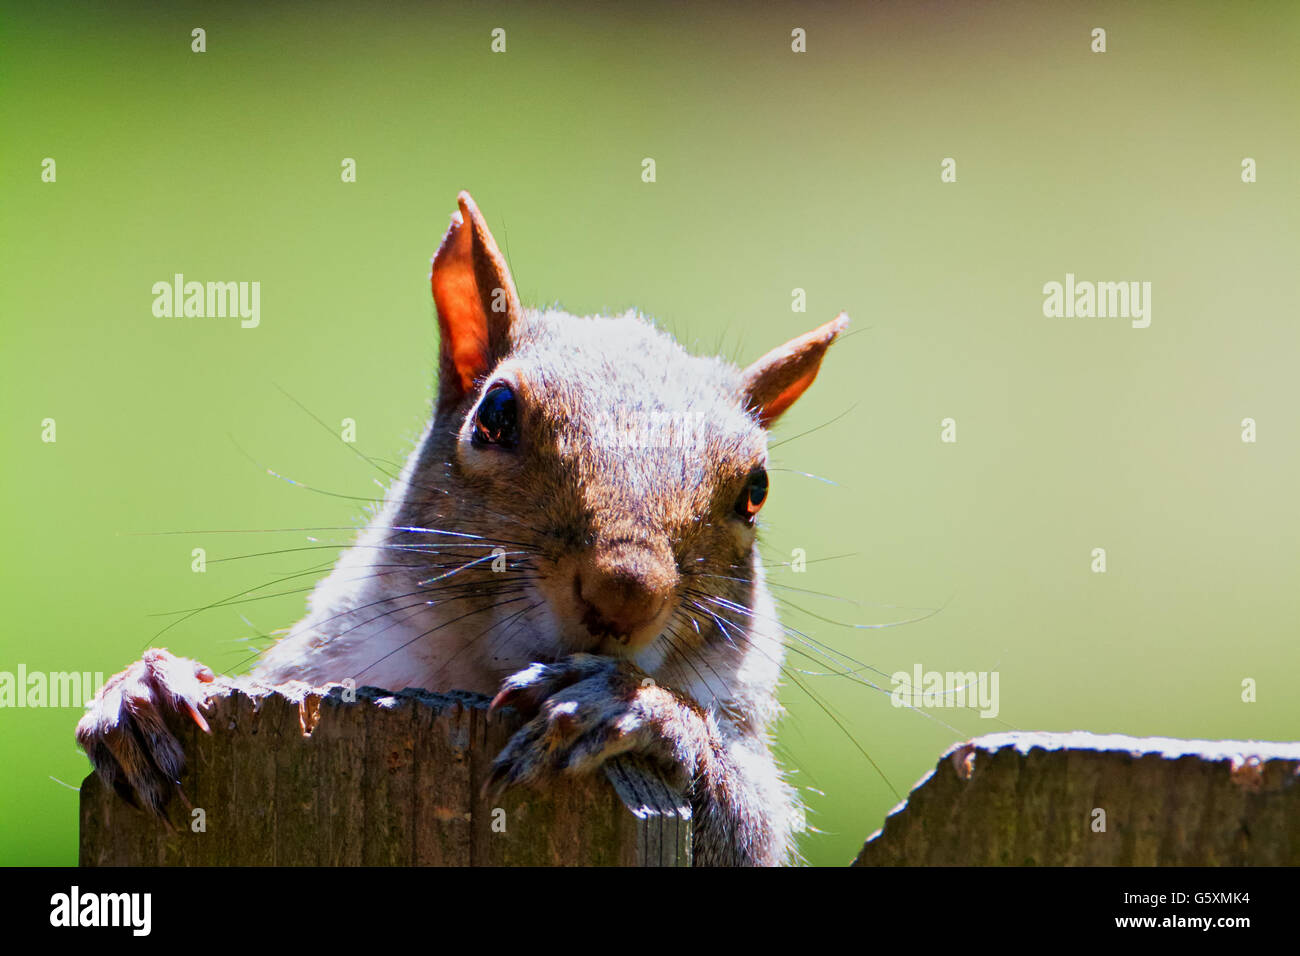 squirrel holding onto a fencepost - Stock Image